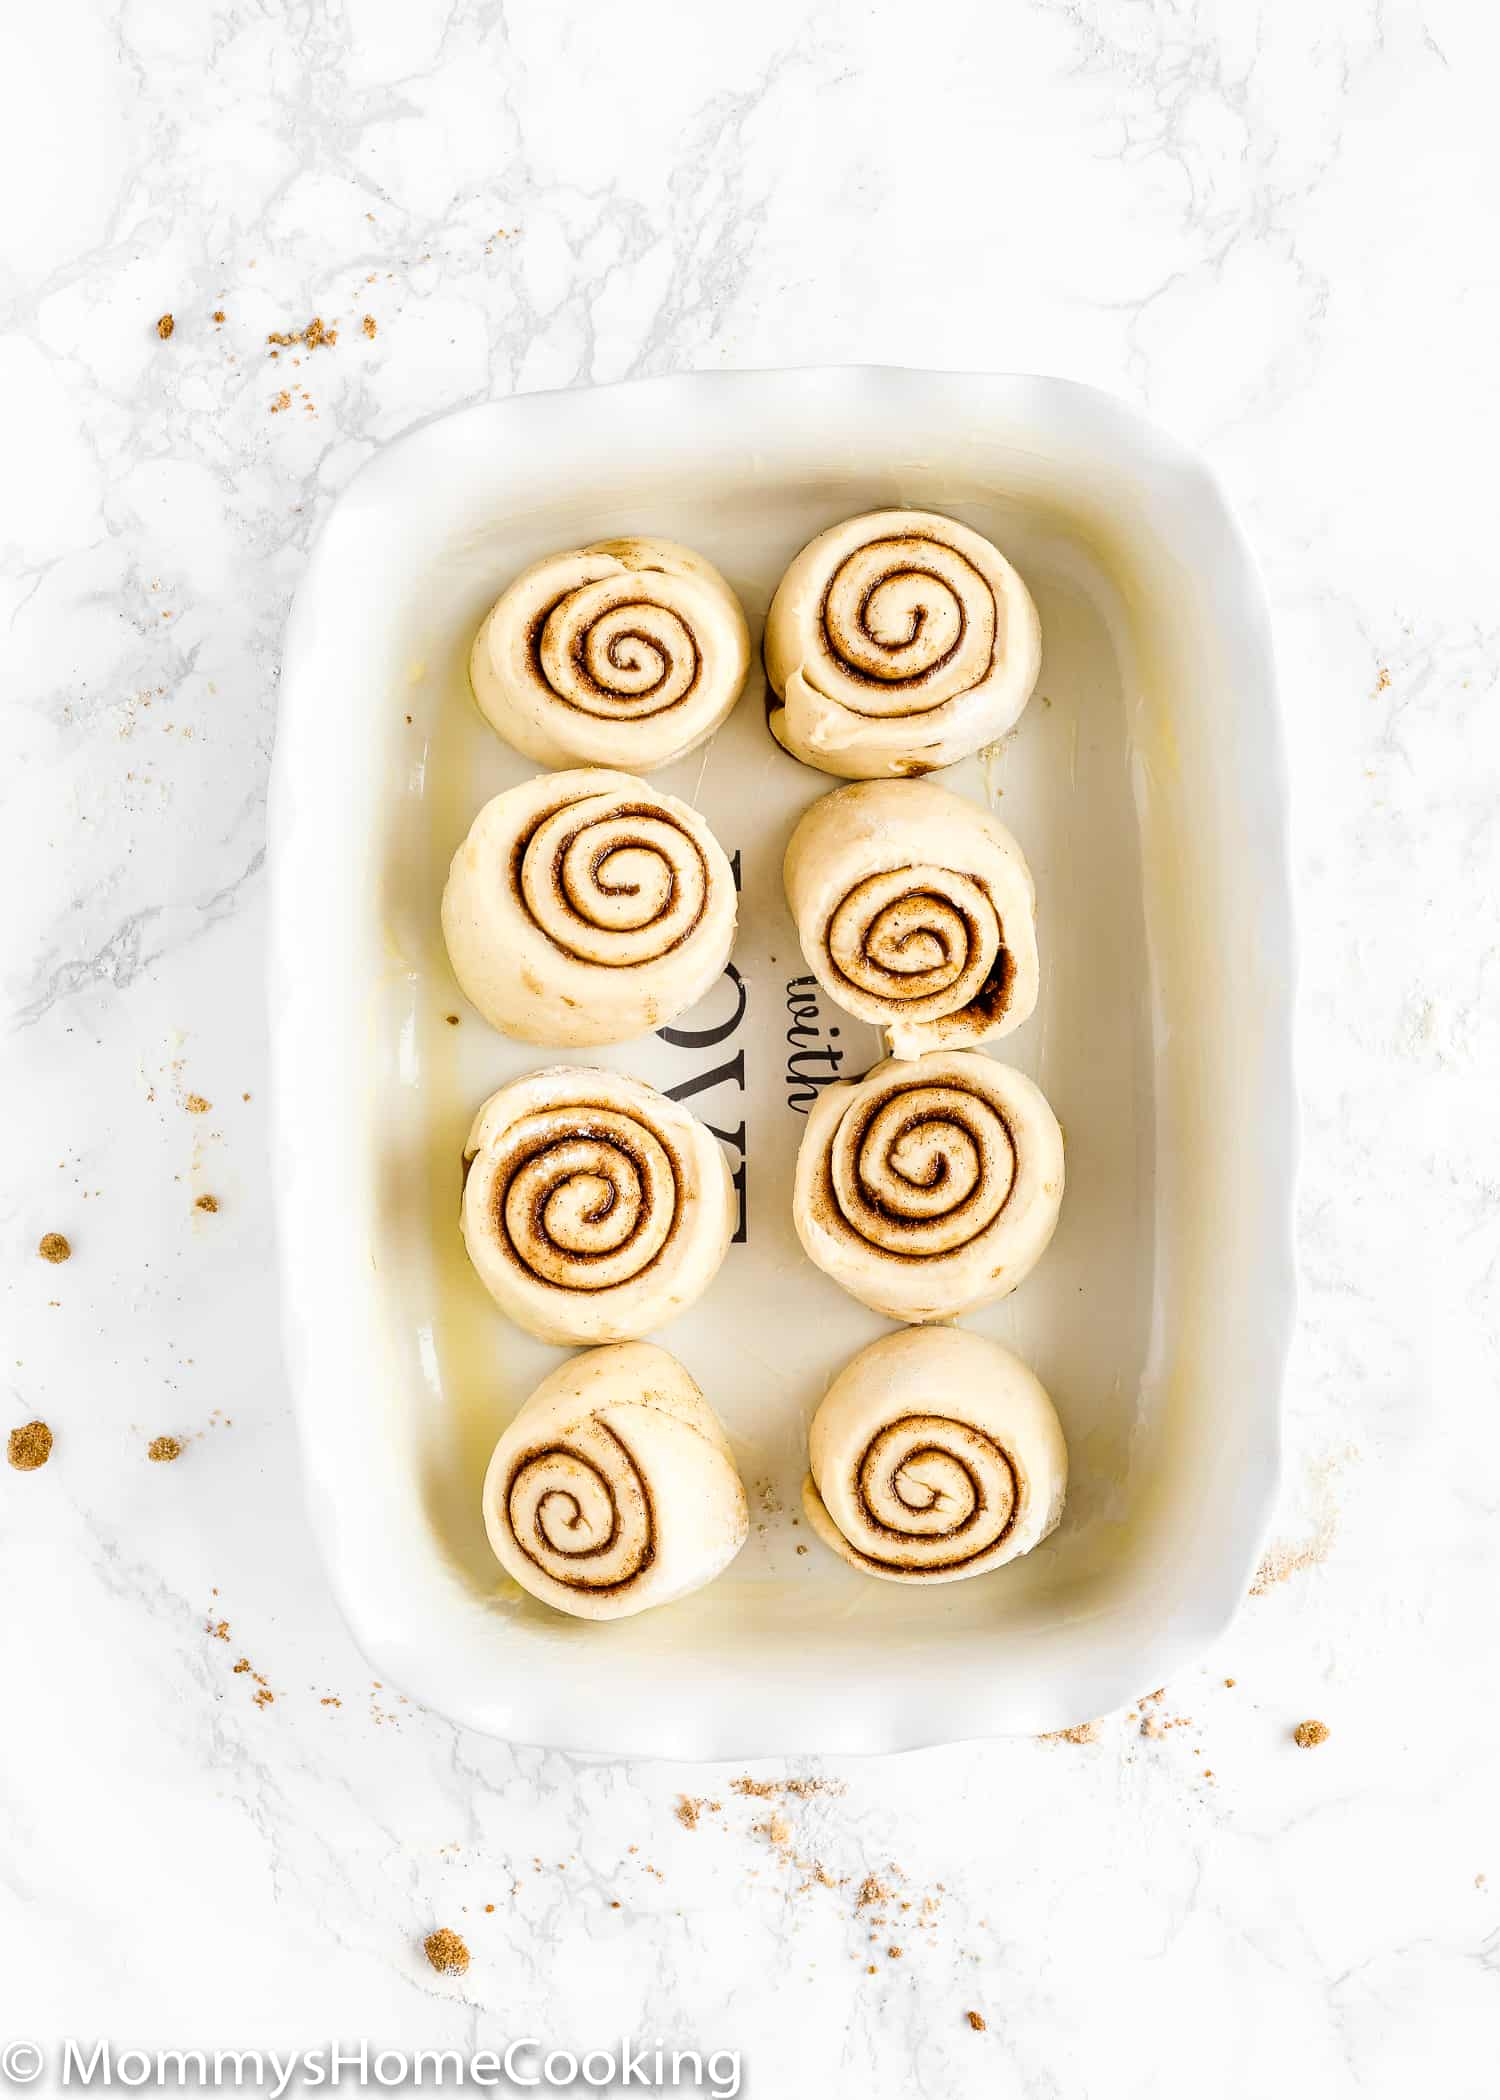 These Easy Eggless Cinnamon Rolls are fluffy, soft and are ready in about 1 hour! Made from scratch and totally delicious, this Eggless Cinnamon Rolls recipe is perfect for breakfast brunch or just dessert. Step-by-step photos and overnight instructions included. https://mommyshomecooking.com